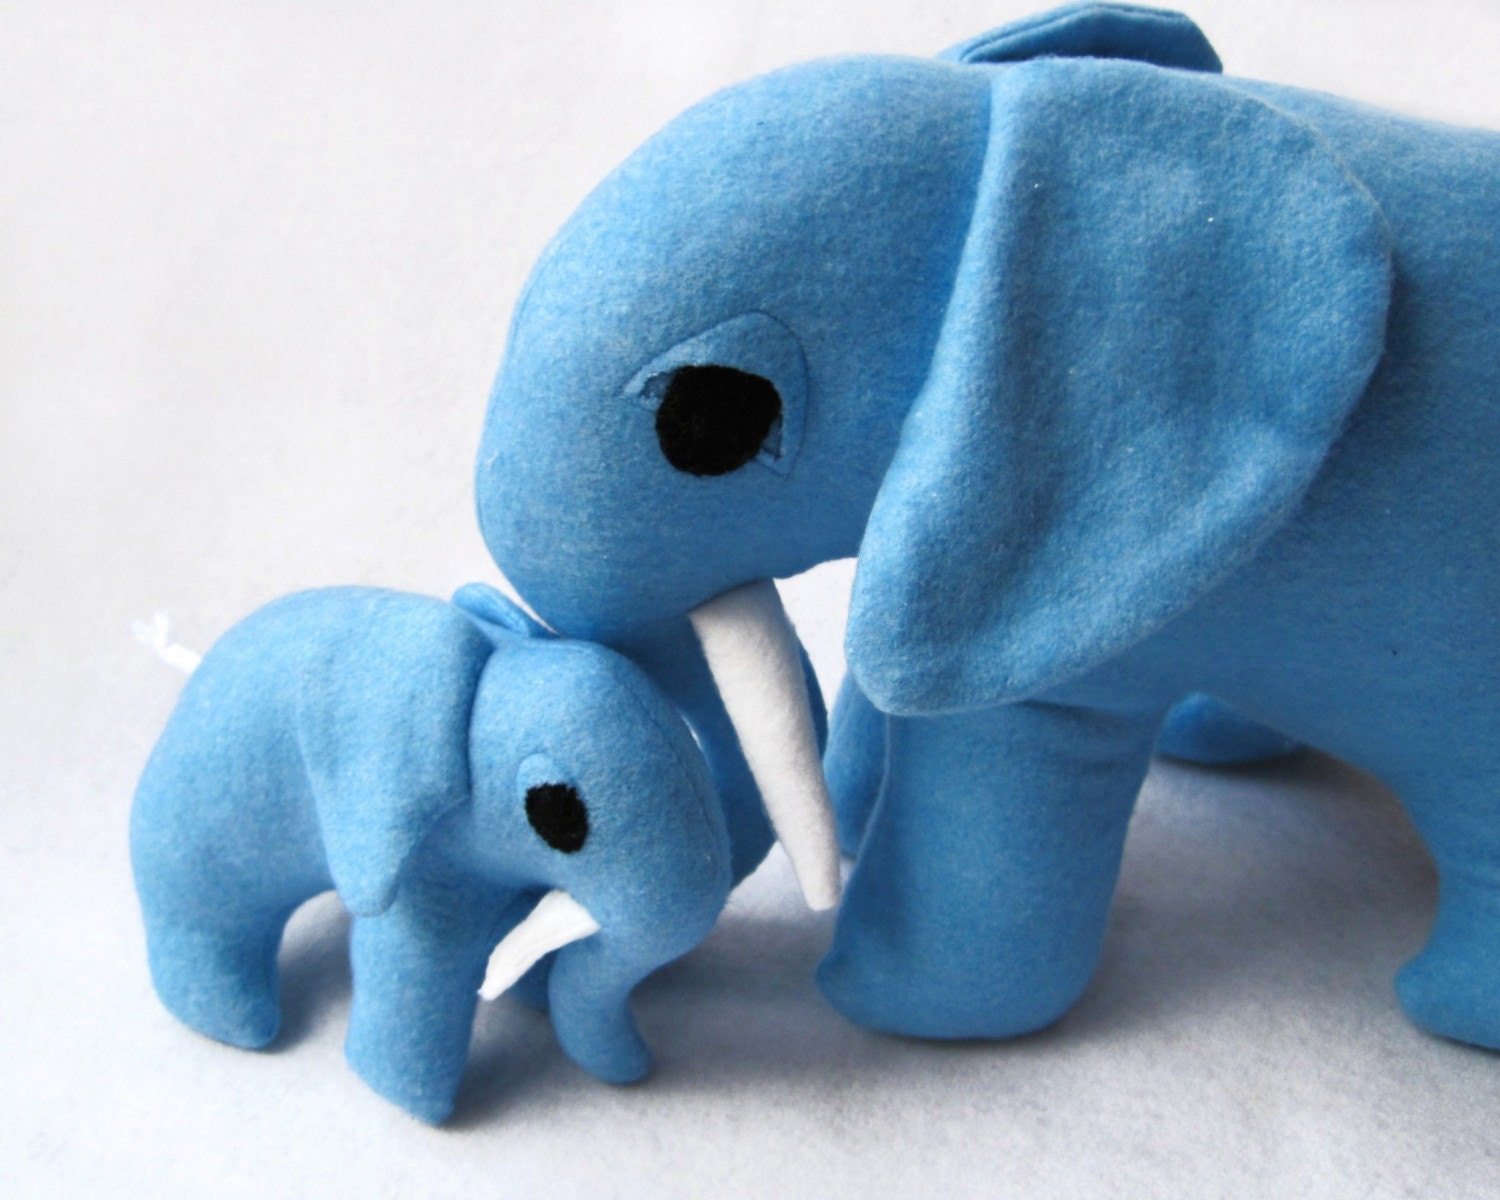 Elephant Stuffed Toy : Elephant stuffed animals toys daddy and baby son handmade